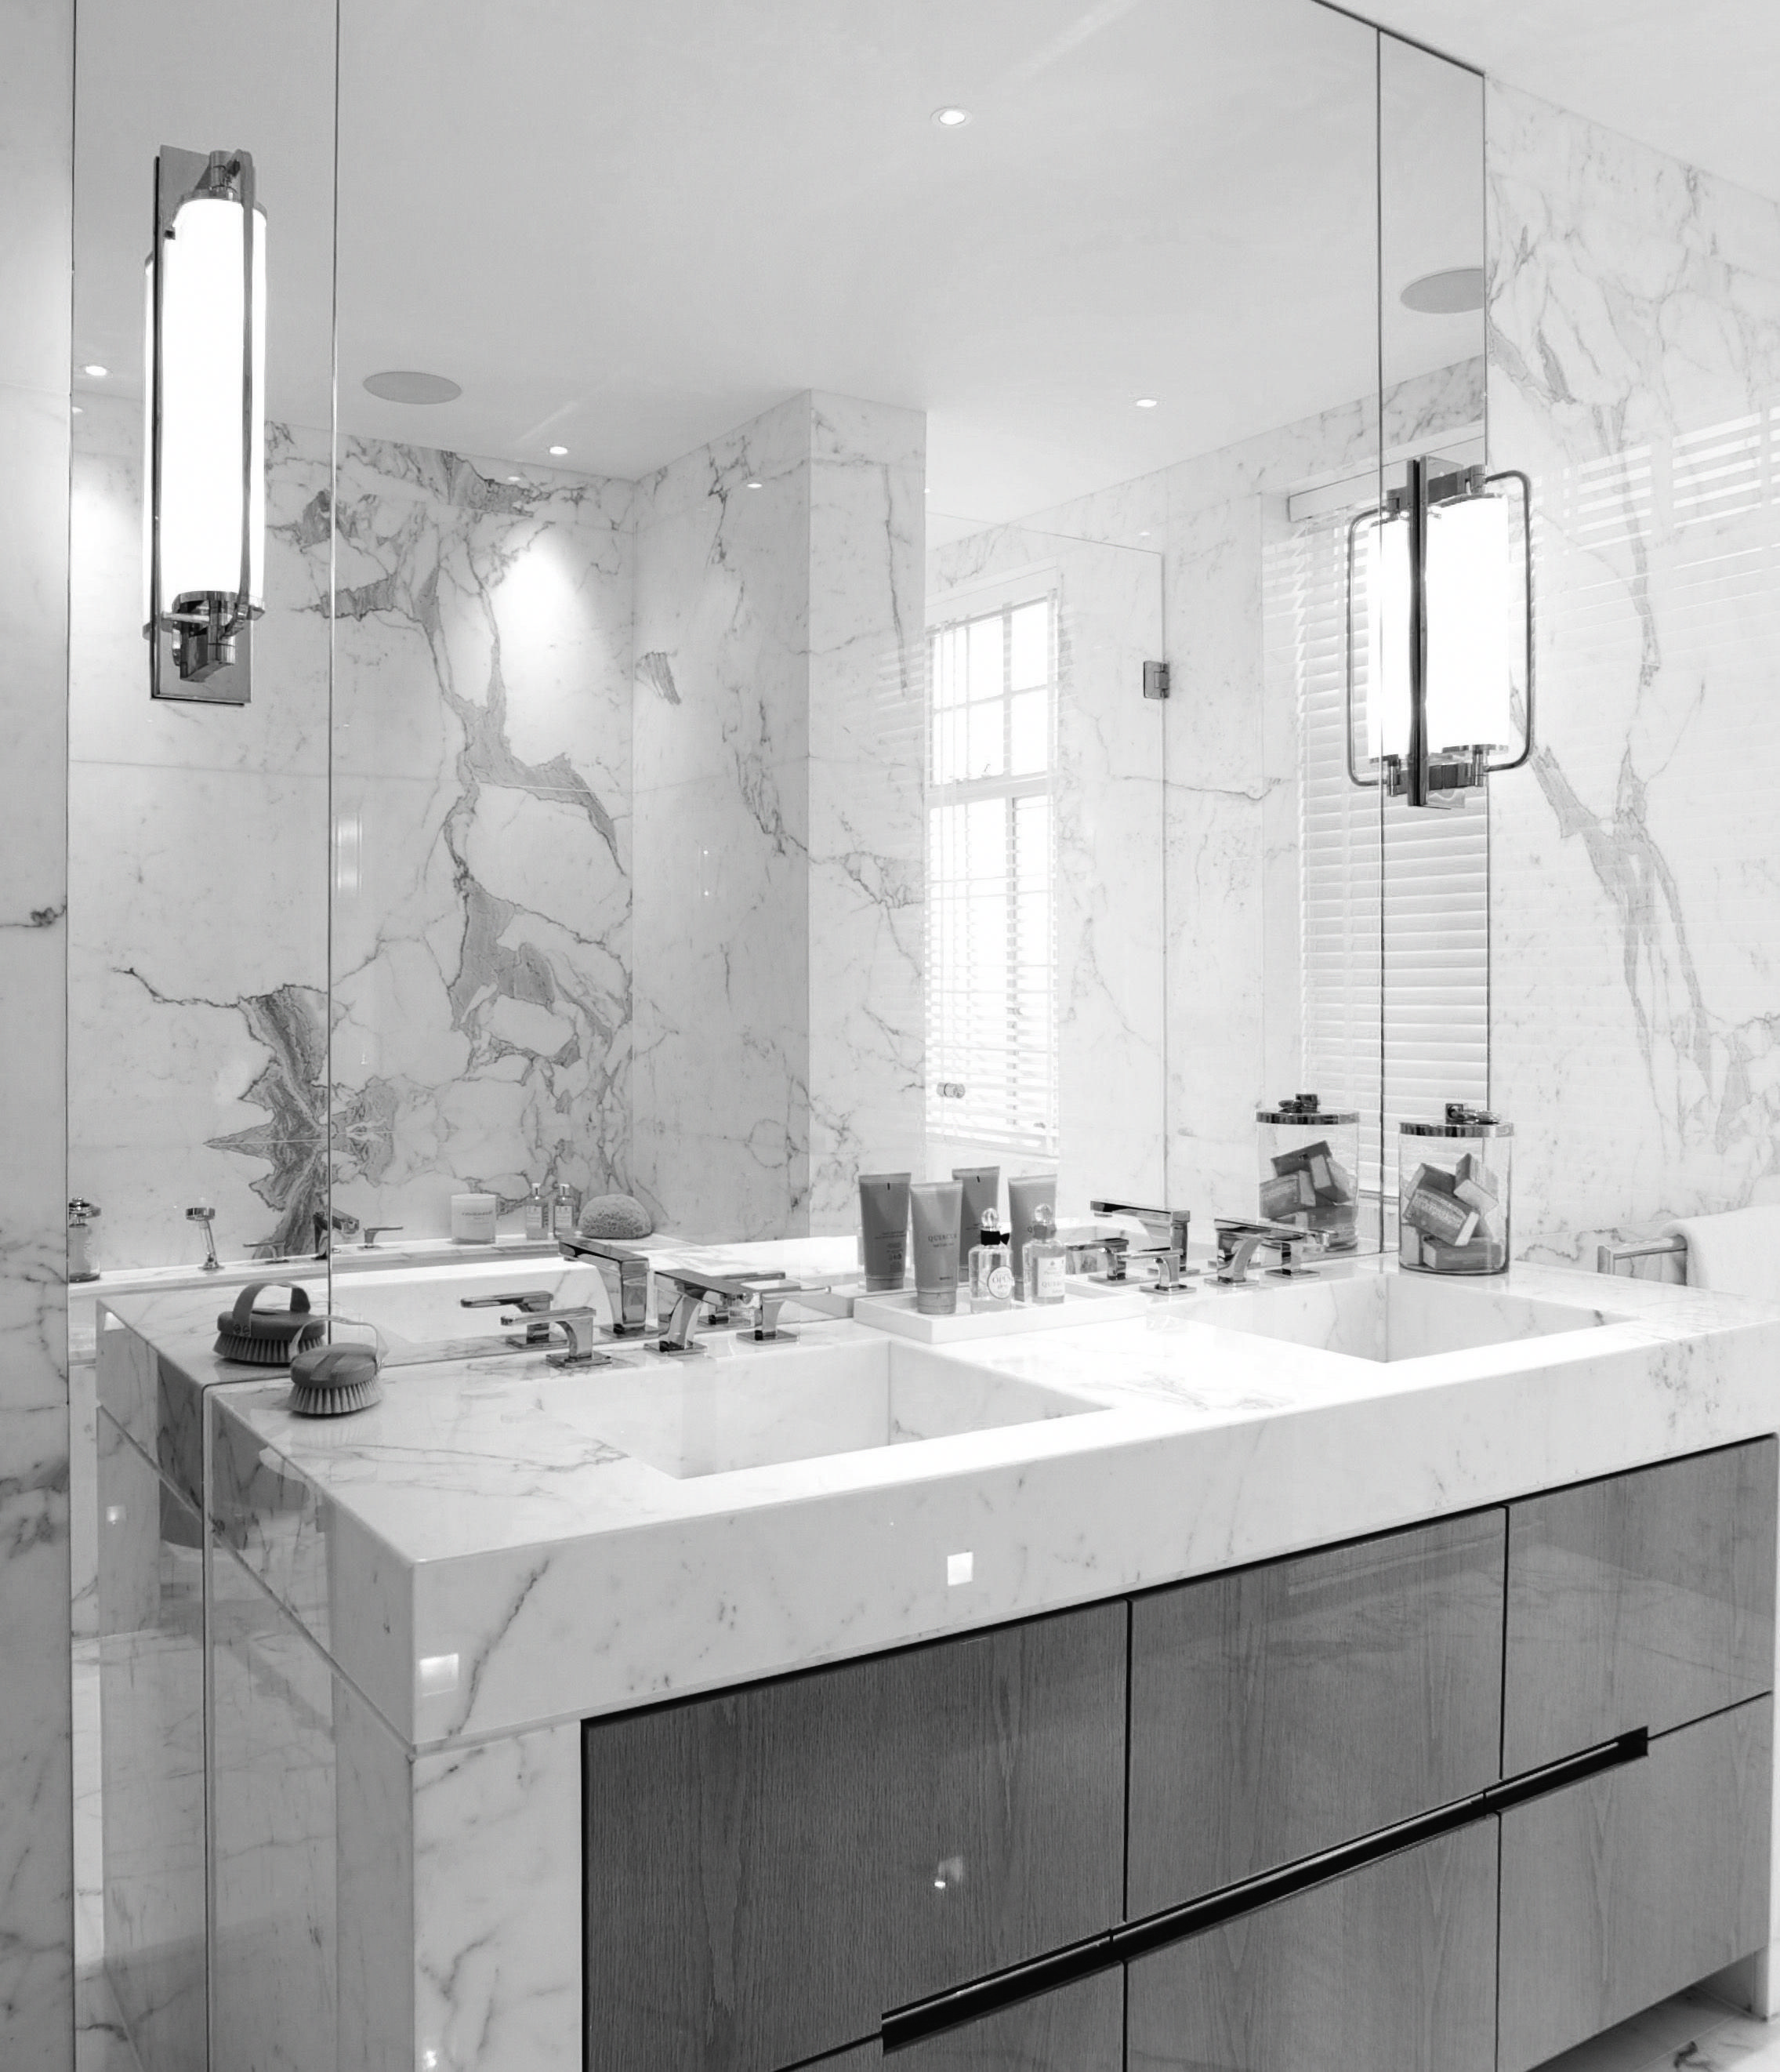 Bathroom Faucets For Sale Near Me #faucetsale In 2019